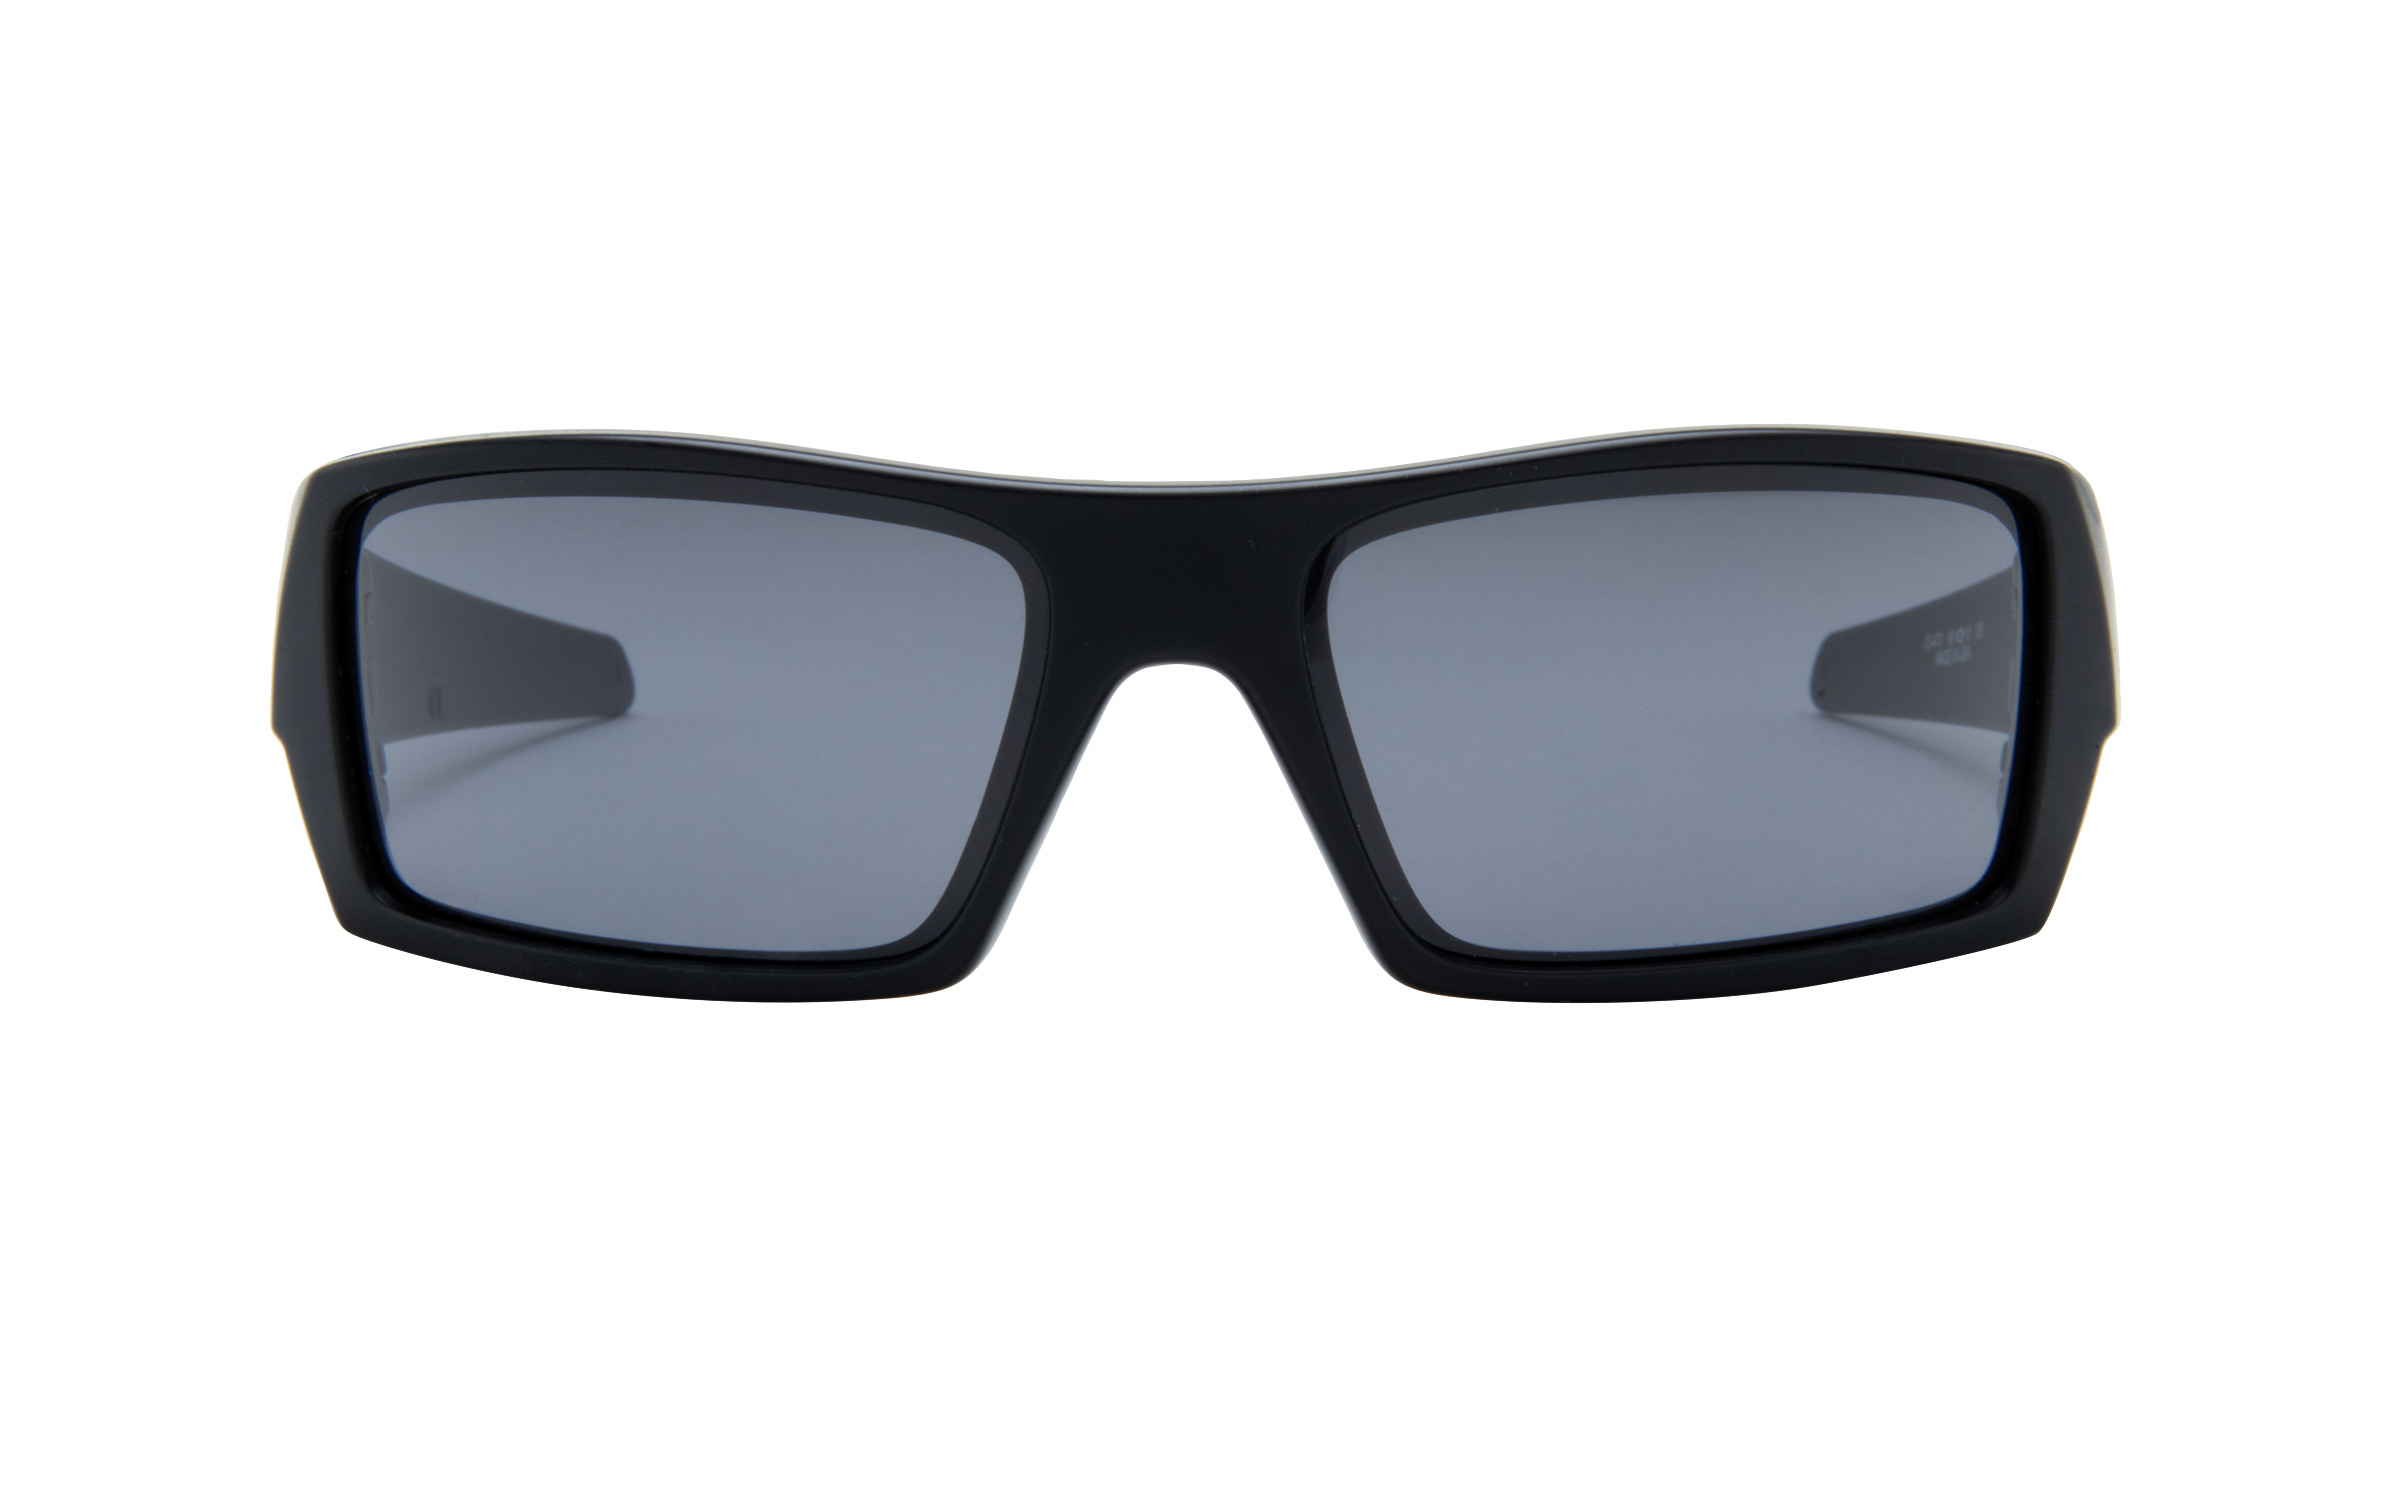 OakleyGascan Oakley Gascan OO9014 03-473 60 Sunglasses in Matte Black | Metal - Online Coastal